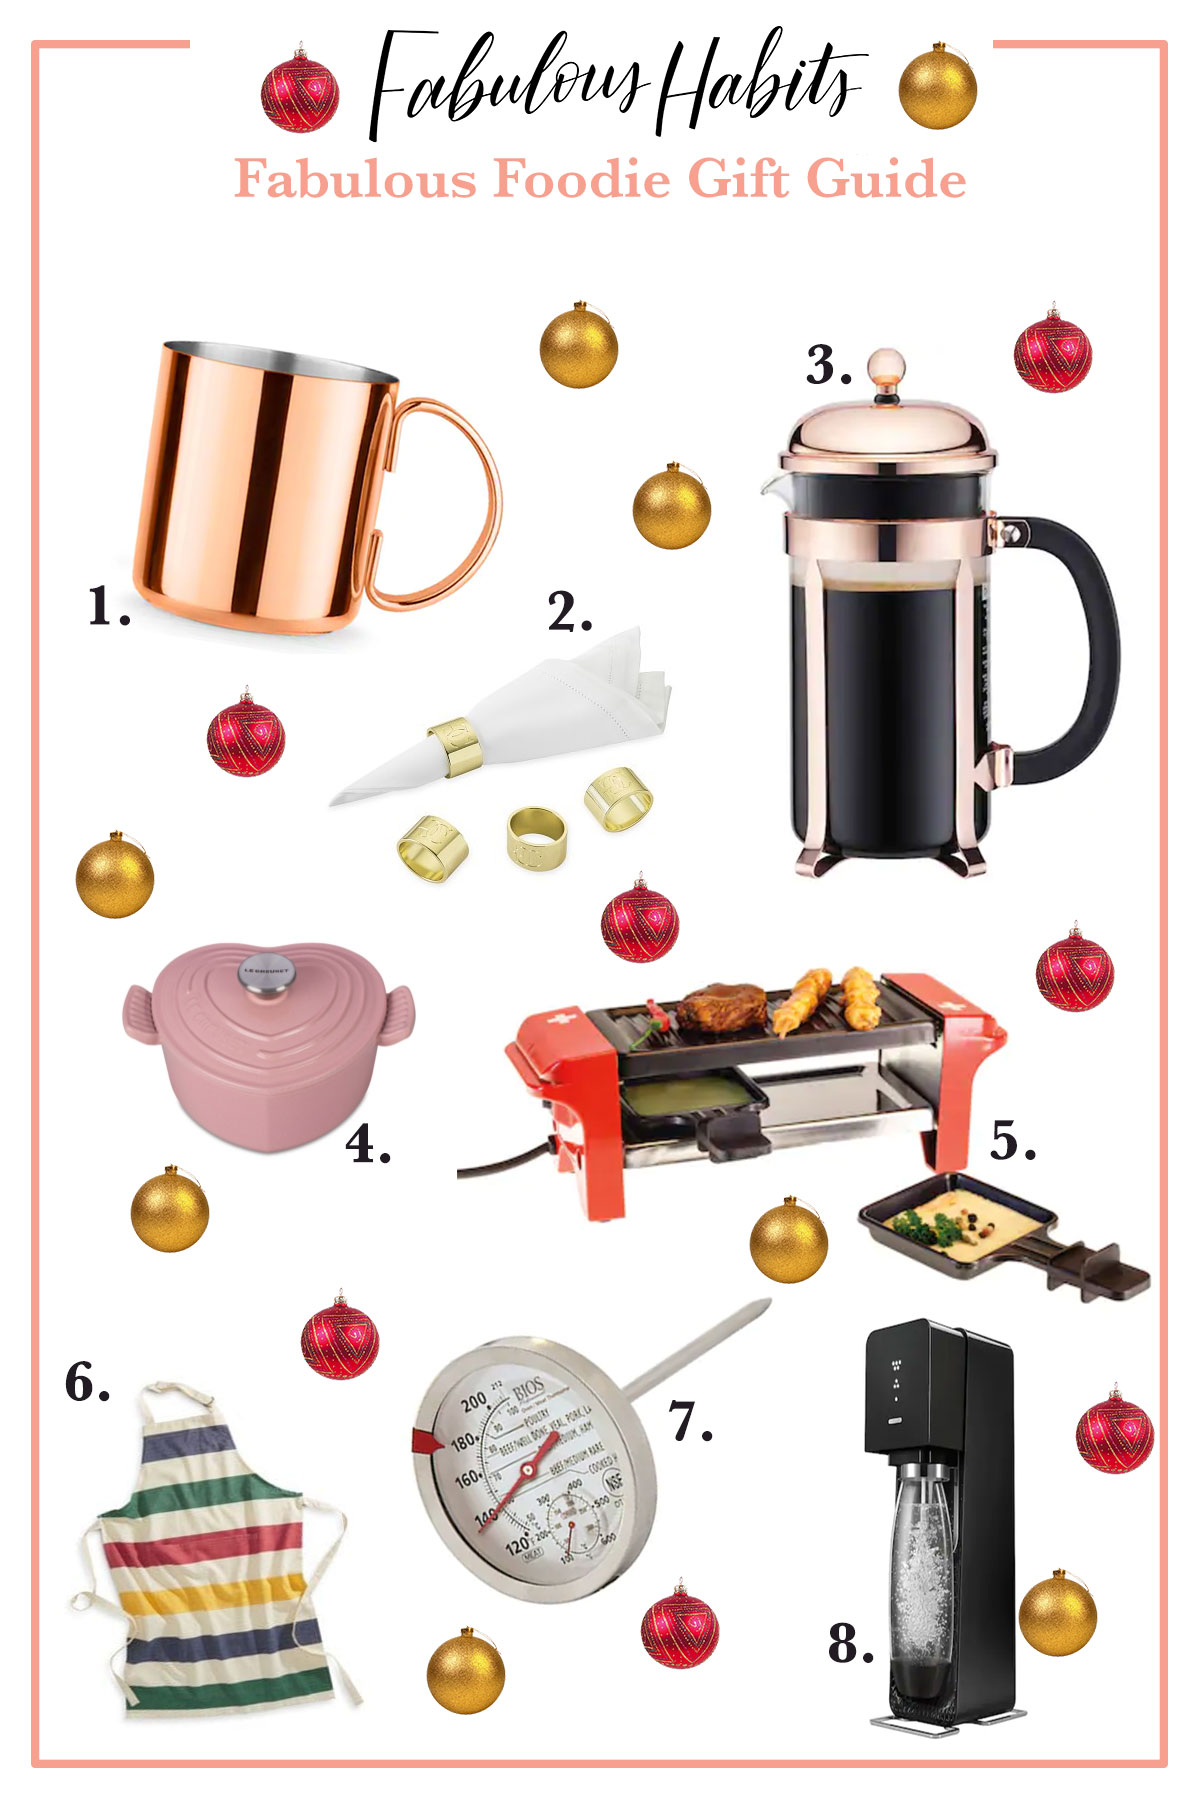 Our first gift guide of the year! This Foodie Gift Guide is a carefully-curated list of items perfect the budding chef in your life.